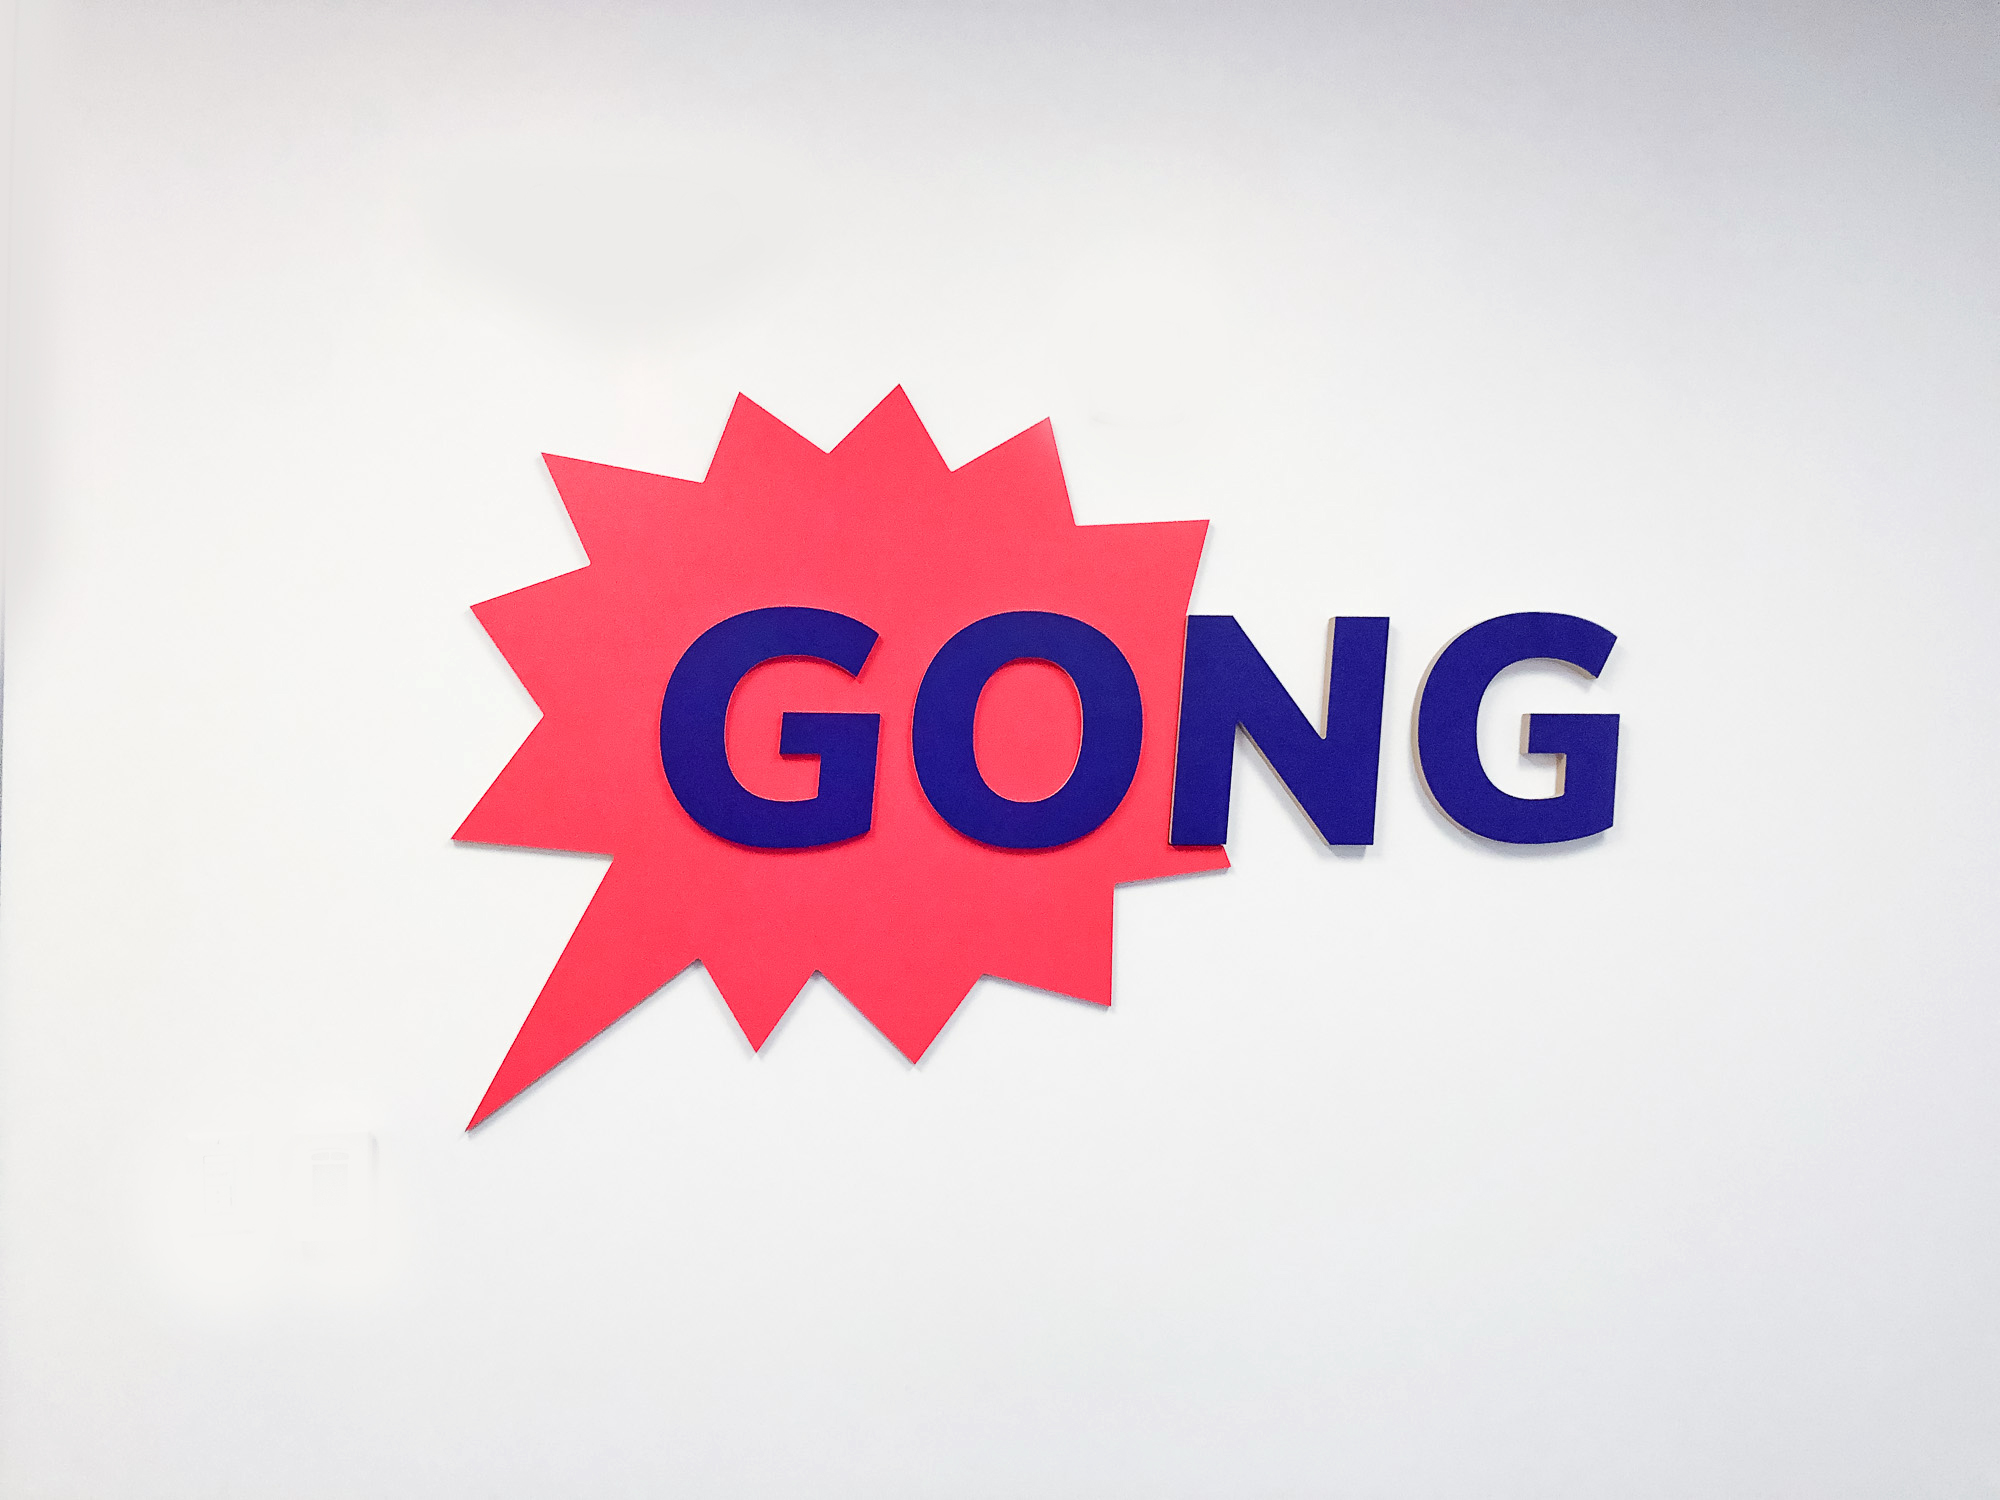 Red and purple painted sign for the San Francisco office of Gong, makers of a conversation intelligence platform for sales.